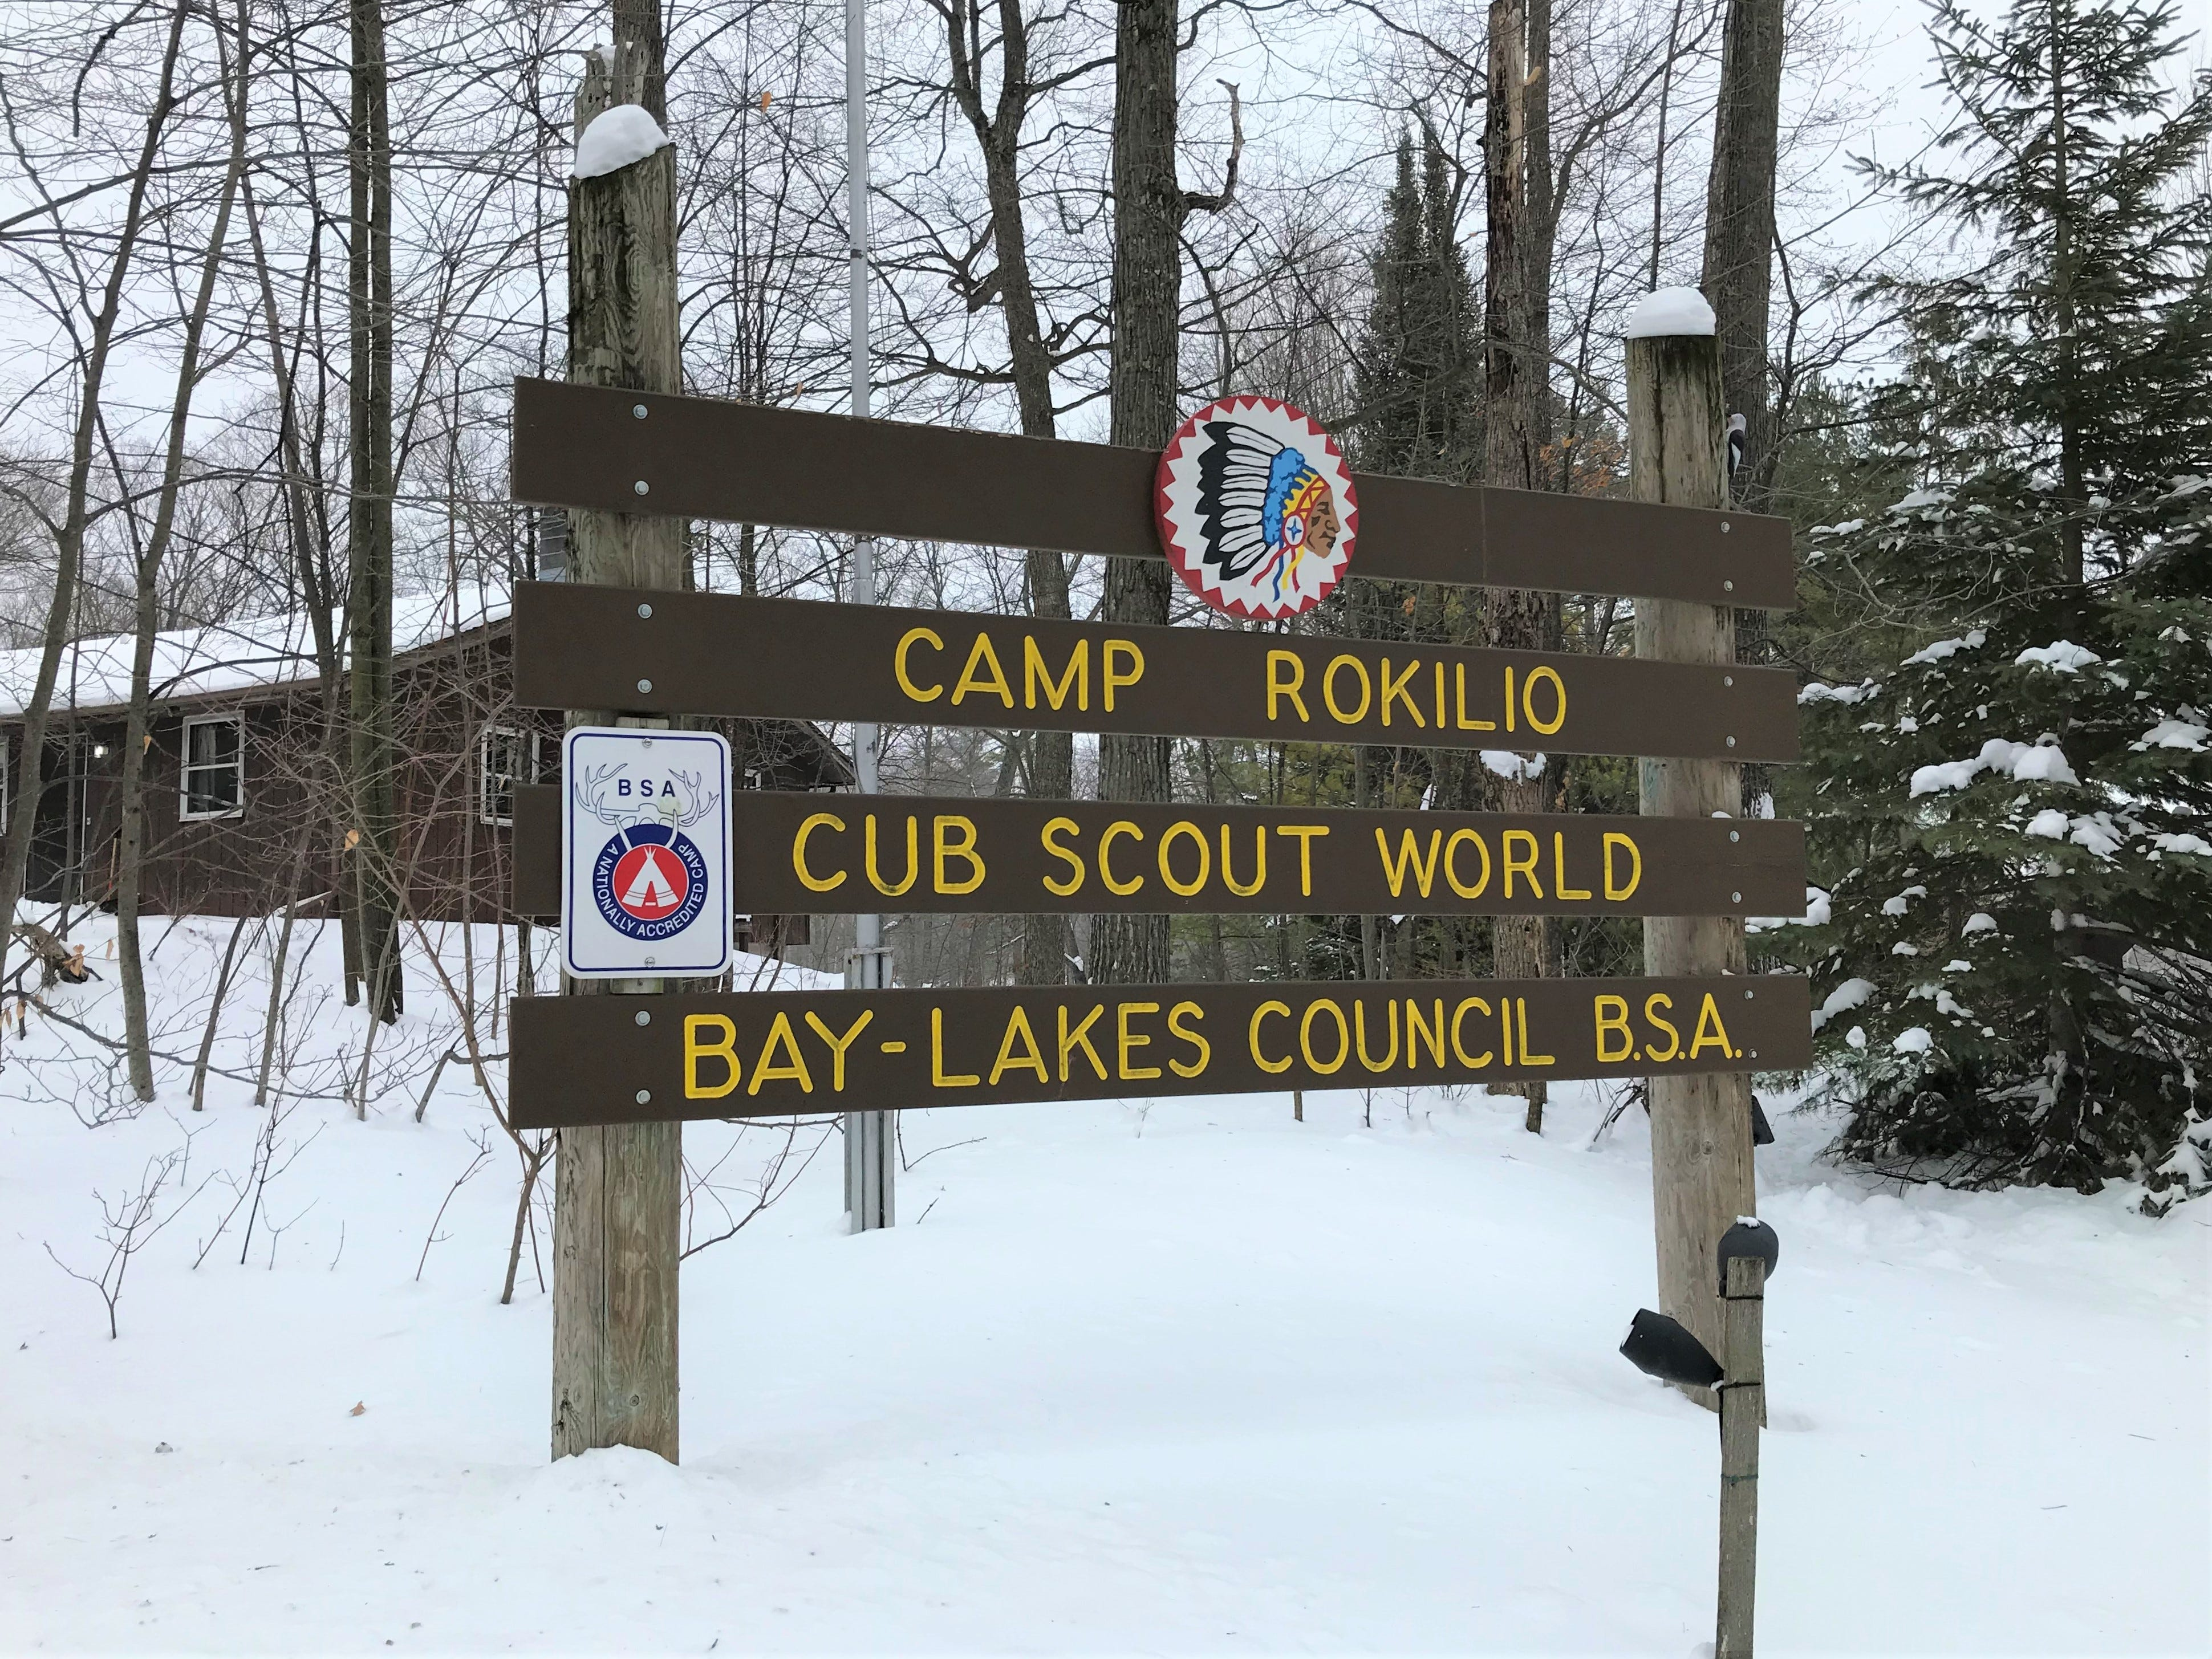 Camp Rokilio in Kiel was the meeting place for scouts of Scouts BSA as part of the new co-ed program.